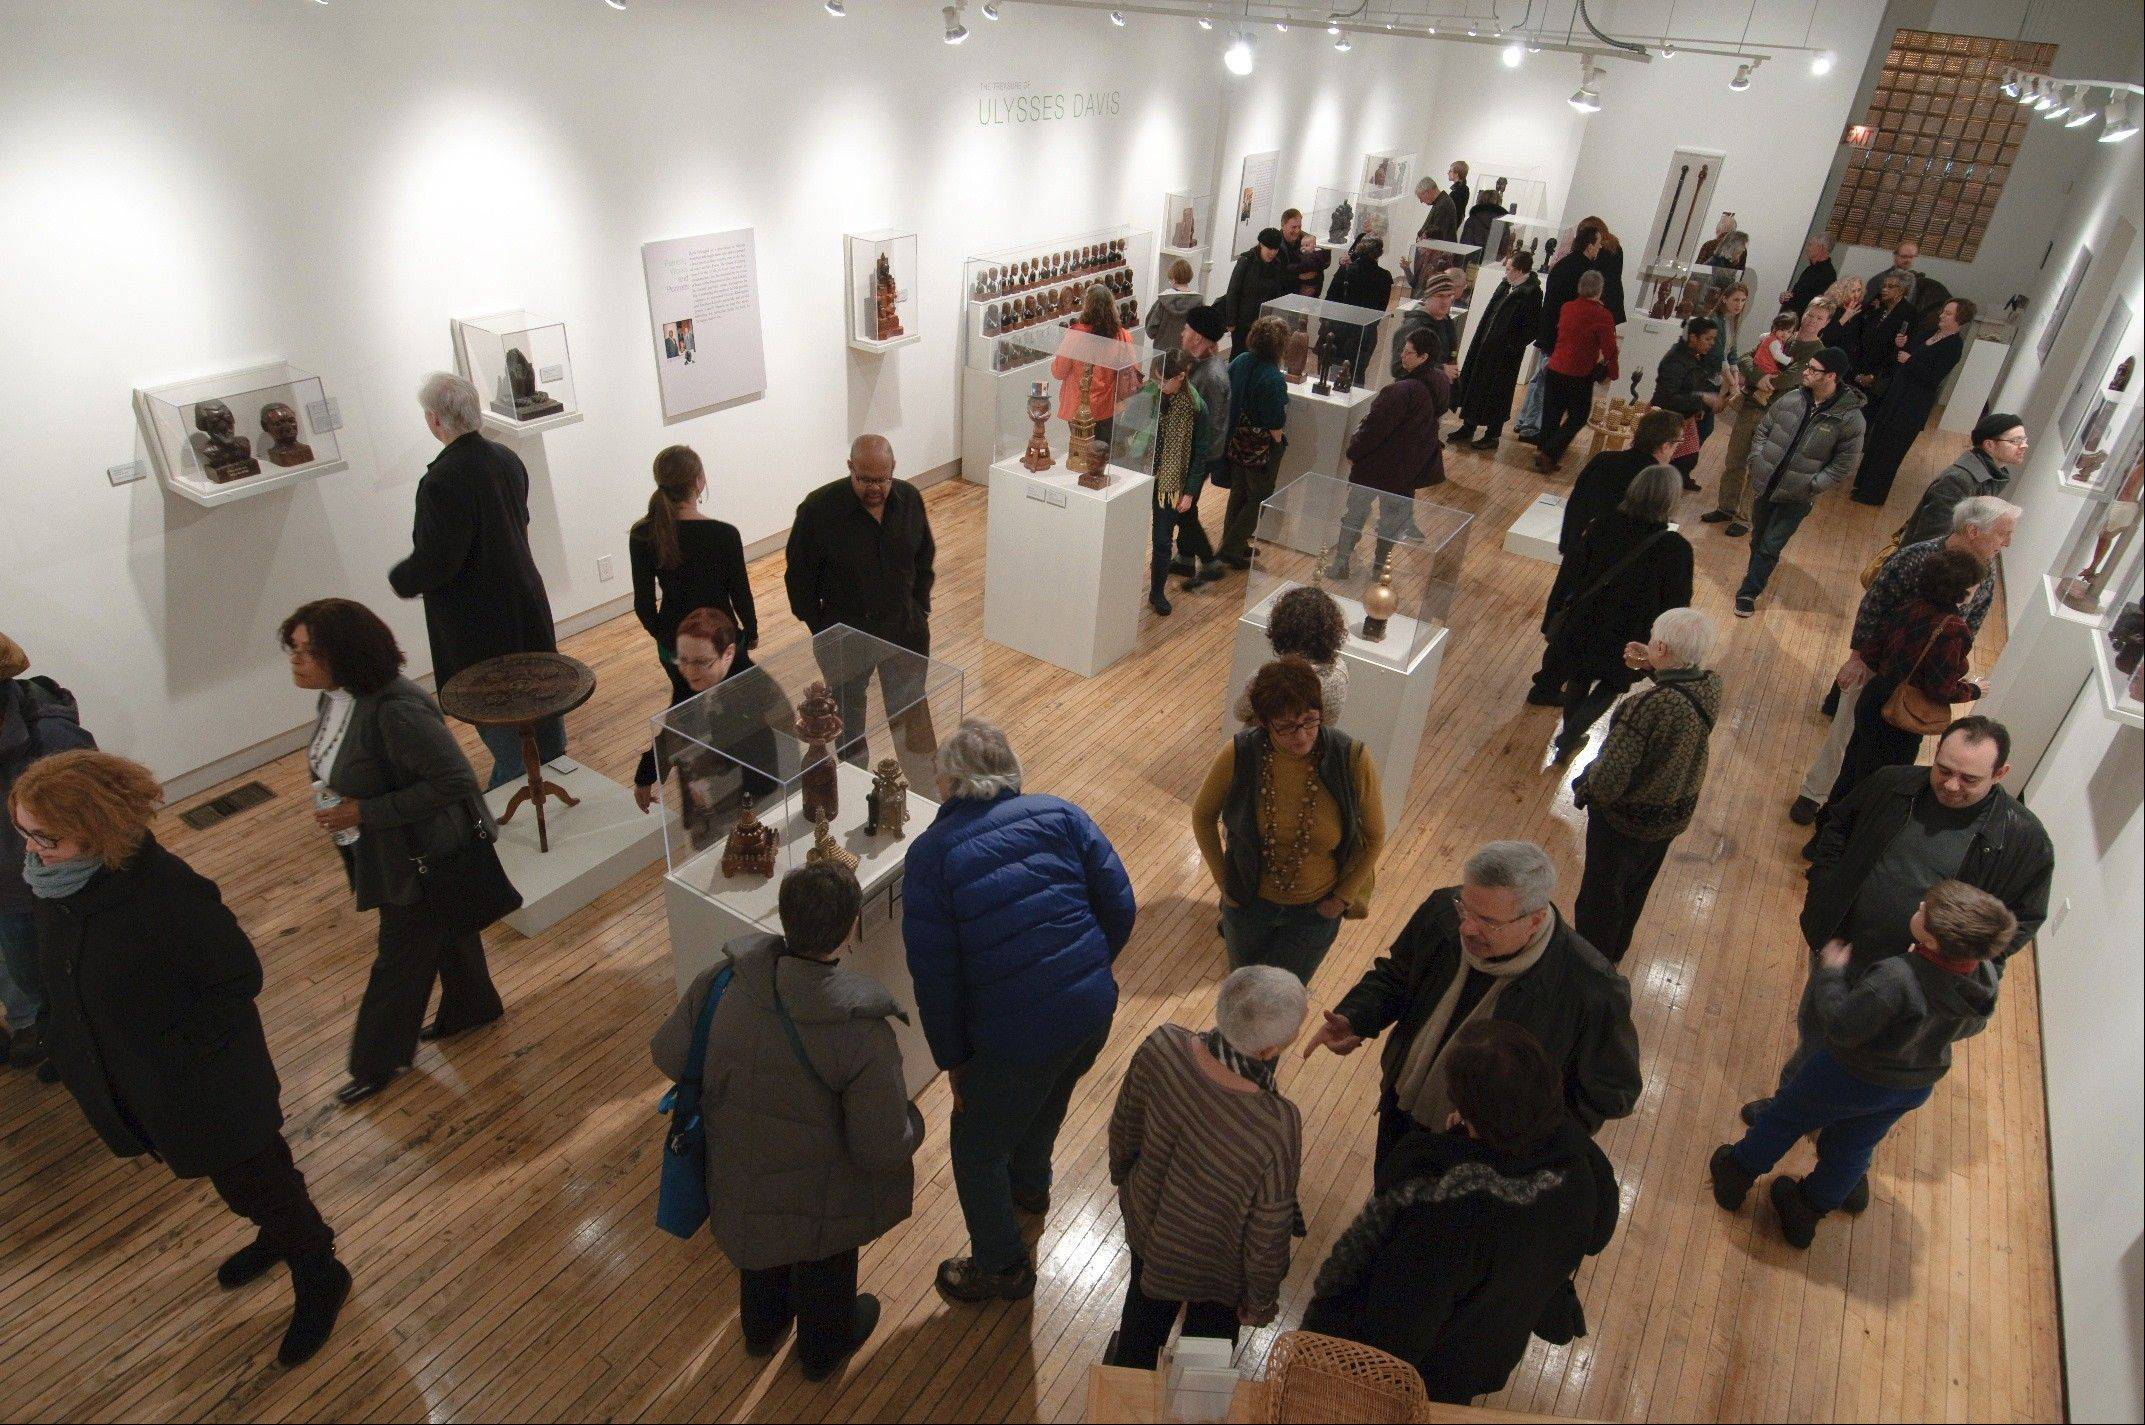 Consider a visit to Chicago's Intuit: The Center for Intuitive and Outsider Art, open Tuesday to Saturday in Chicago.